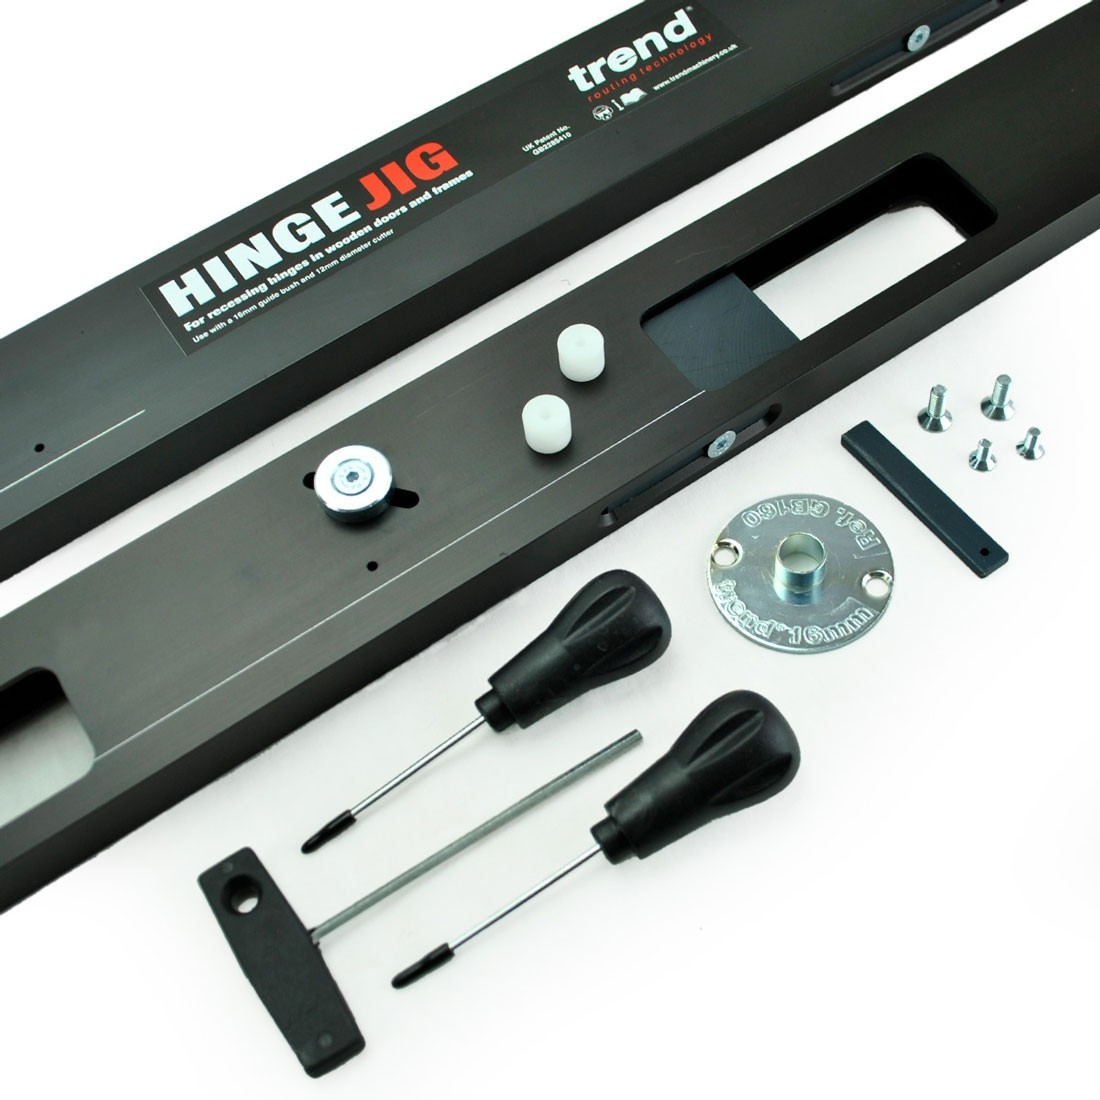 Trend H/JIG/A Hinge Jig Two Part Template Set in Case | Powertool World